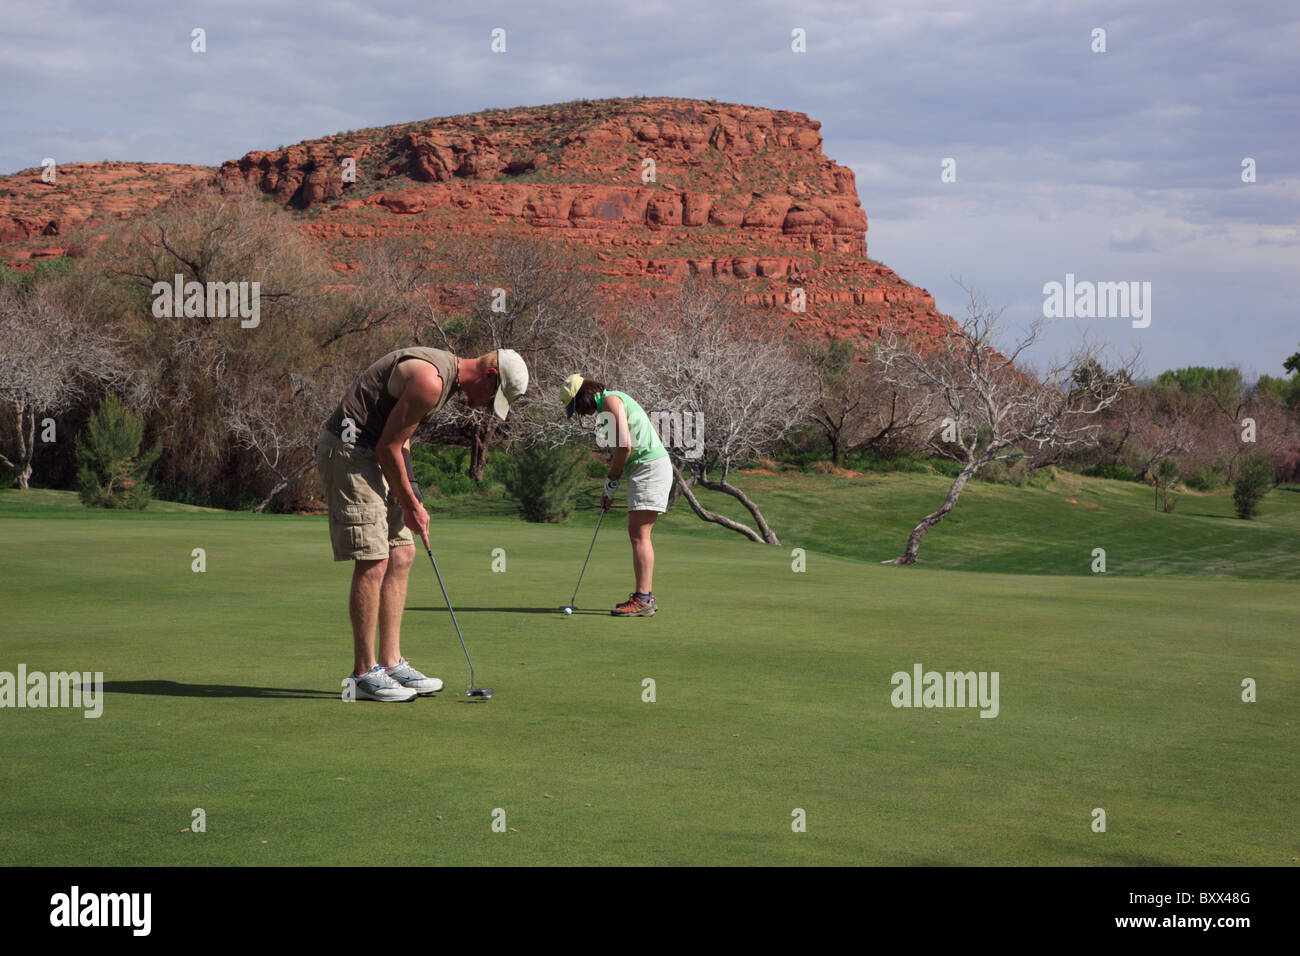 Golfers putting at Dixie Red Hills golf course in St George, Utah, USA. - Stock Image